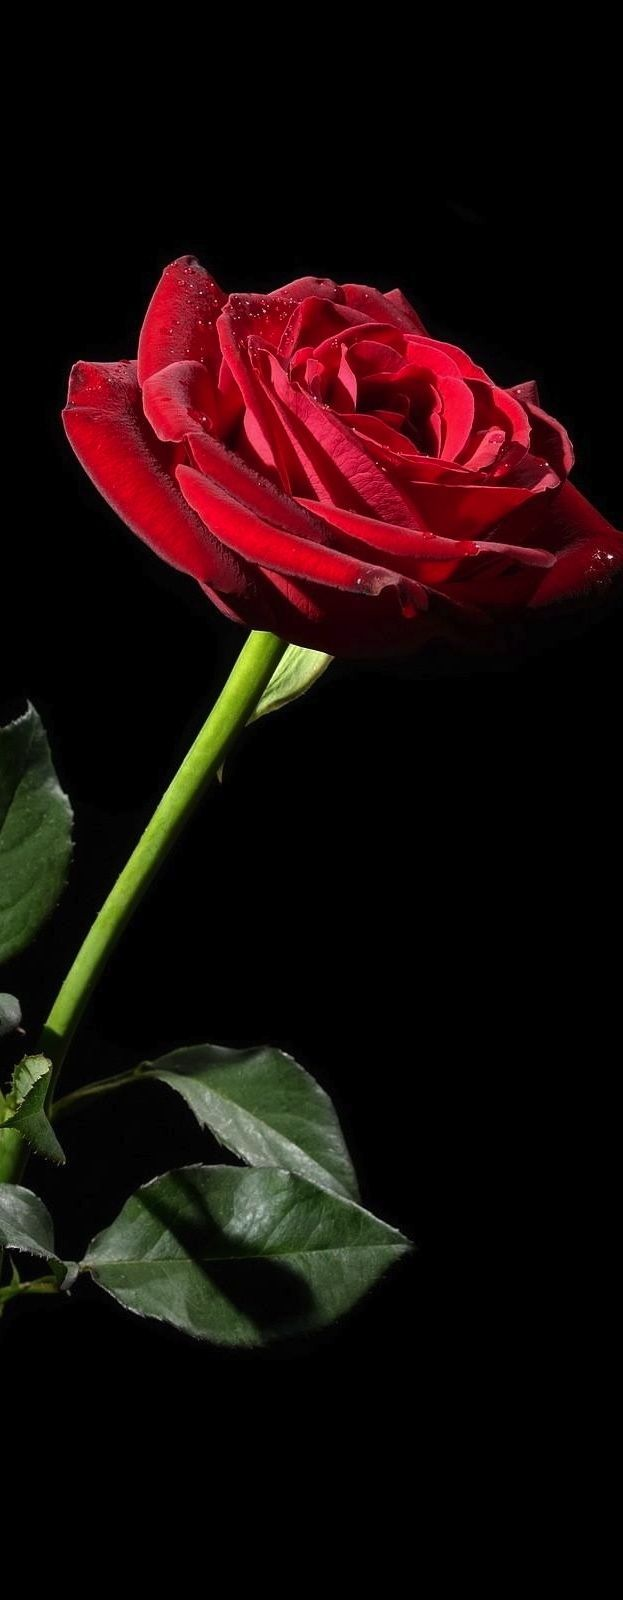 Drawn red rose most beautiful single Beautiful on Red Pinterest ✿⊱╮